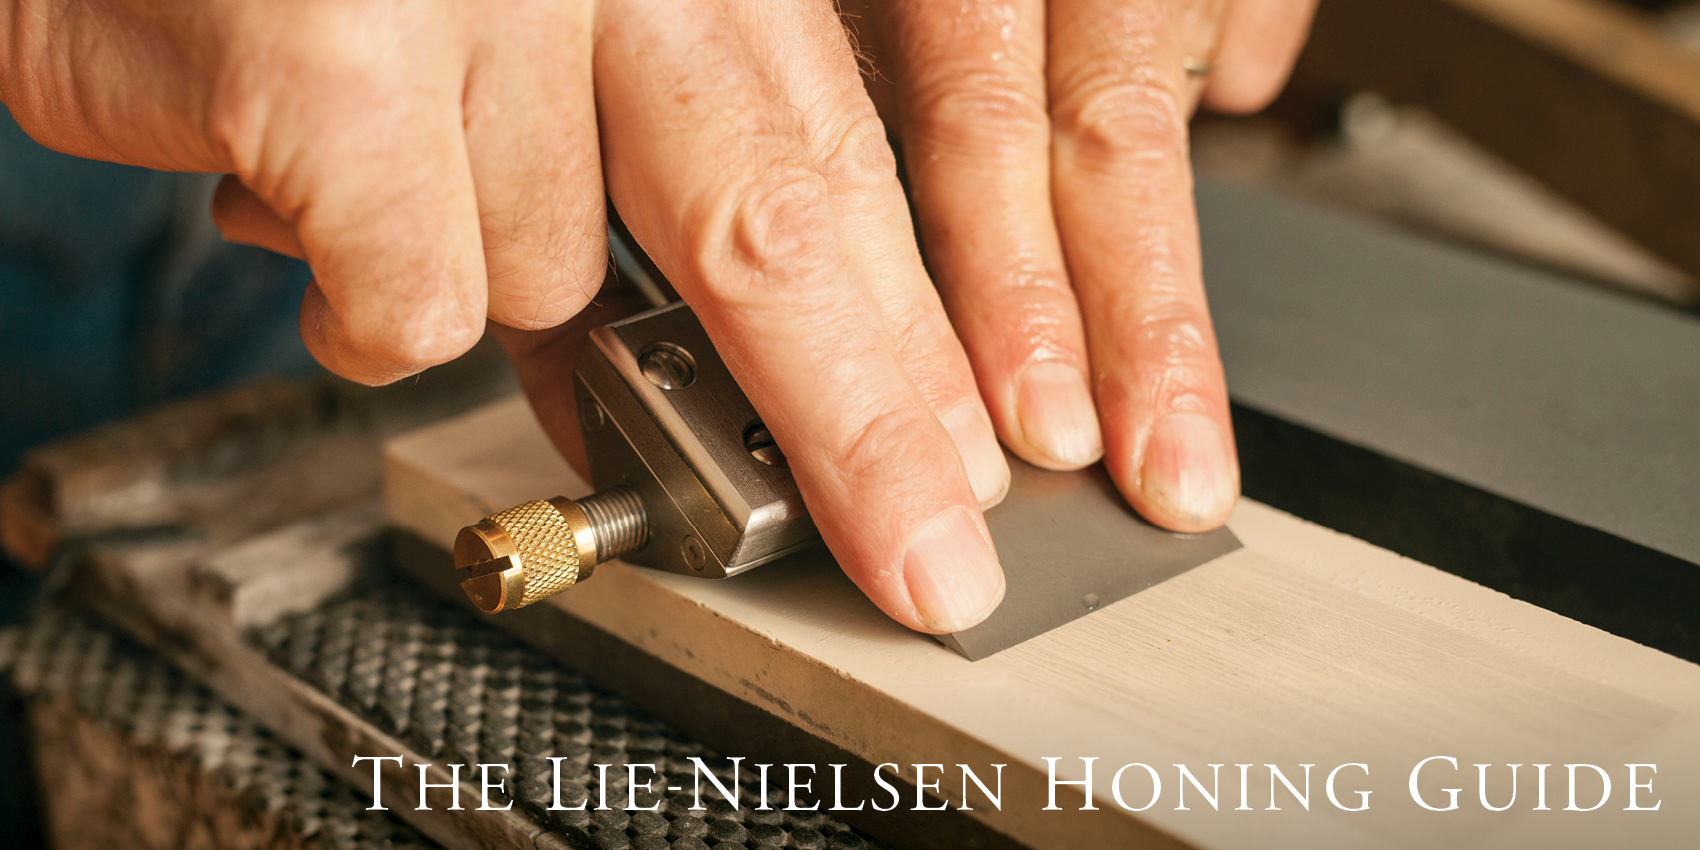 The Lie-Nielsen Honing Guide